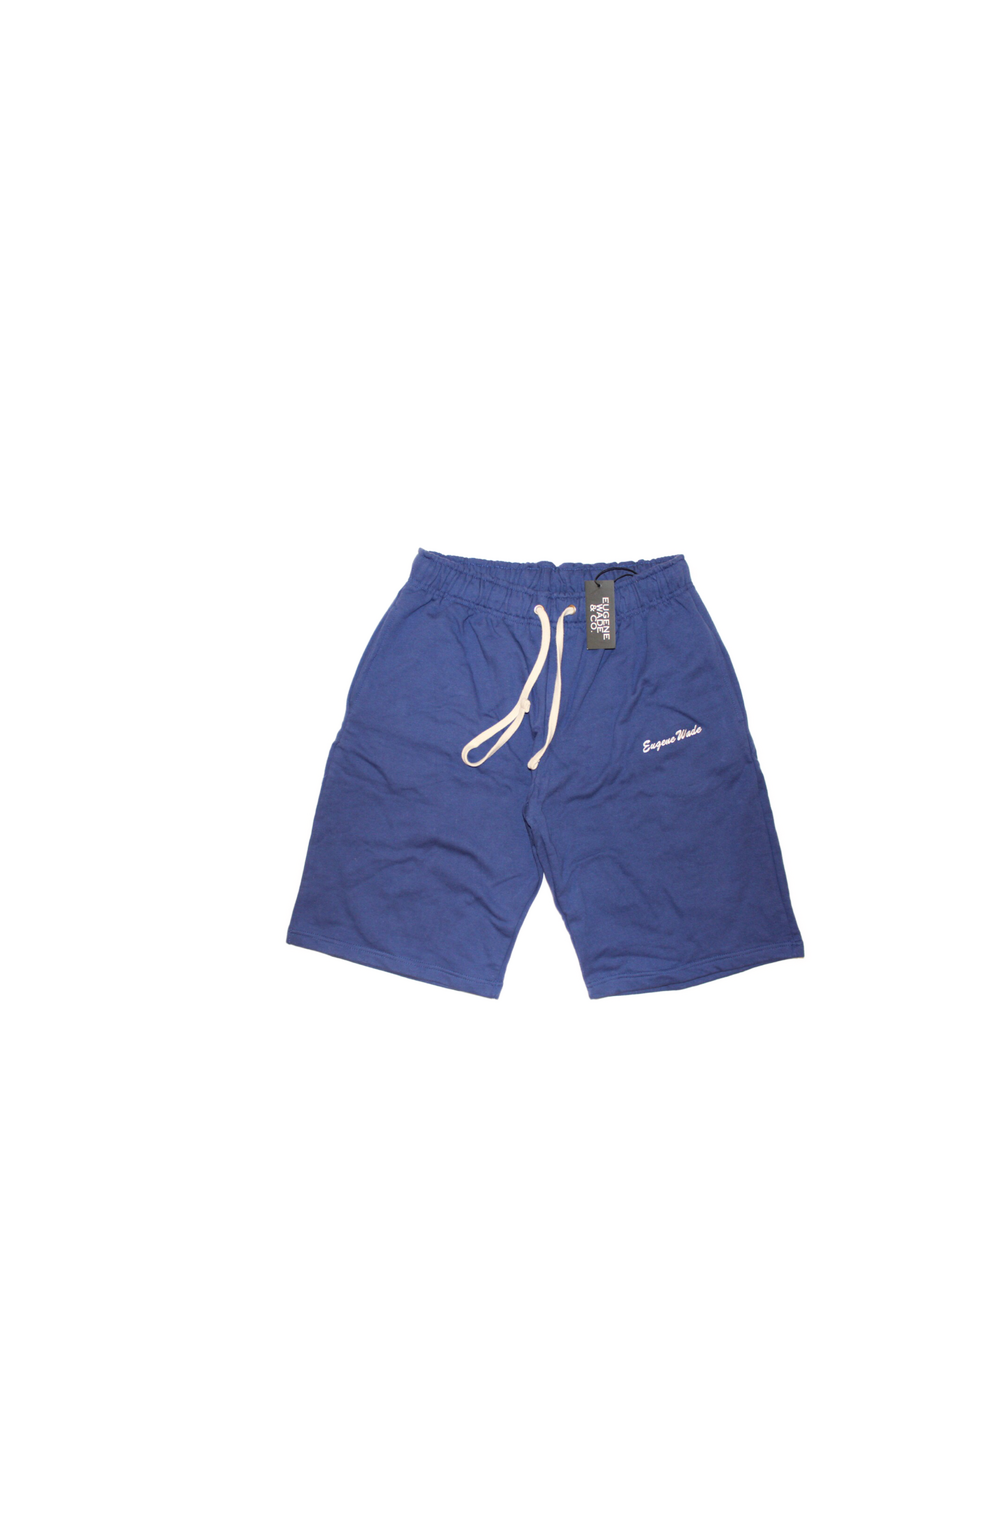 BLUE SHORTS (LIMITED)